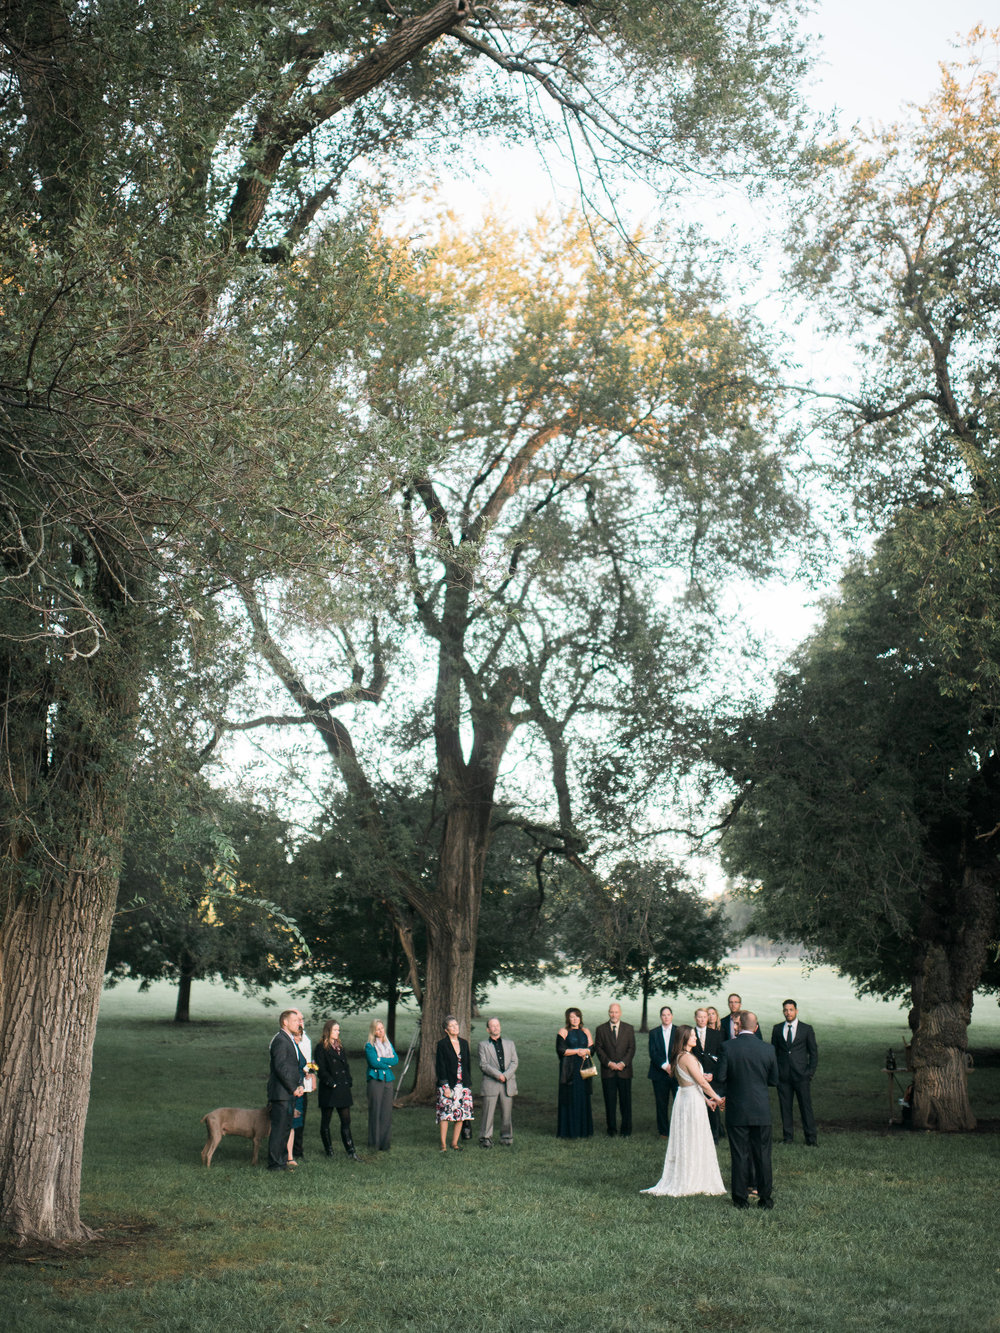 Kansas City Elopement in Loose Park Wedding Photographer